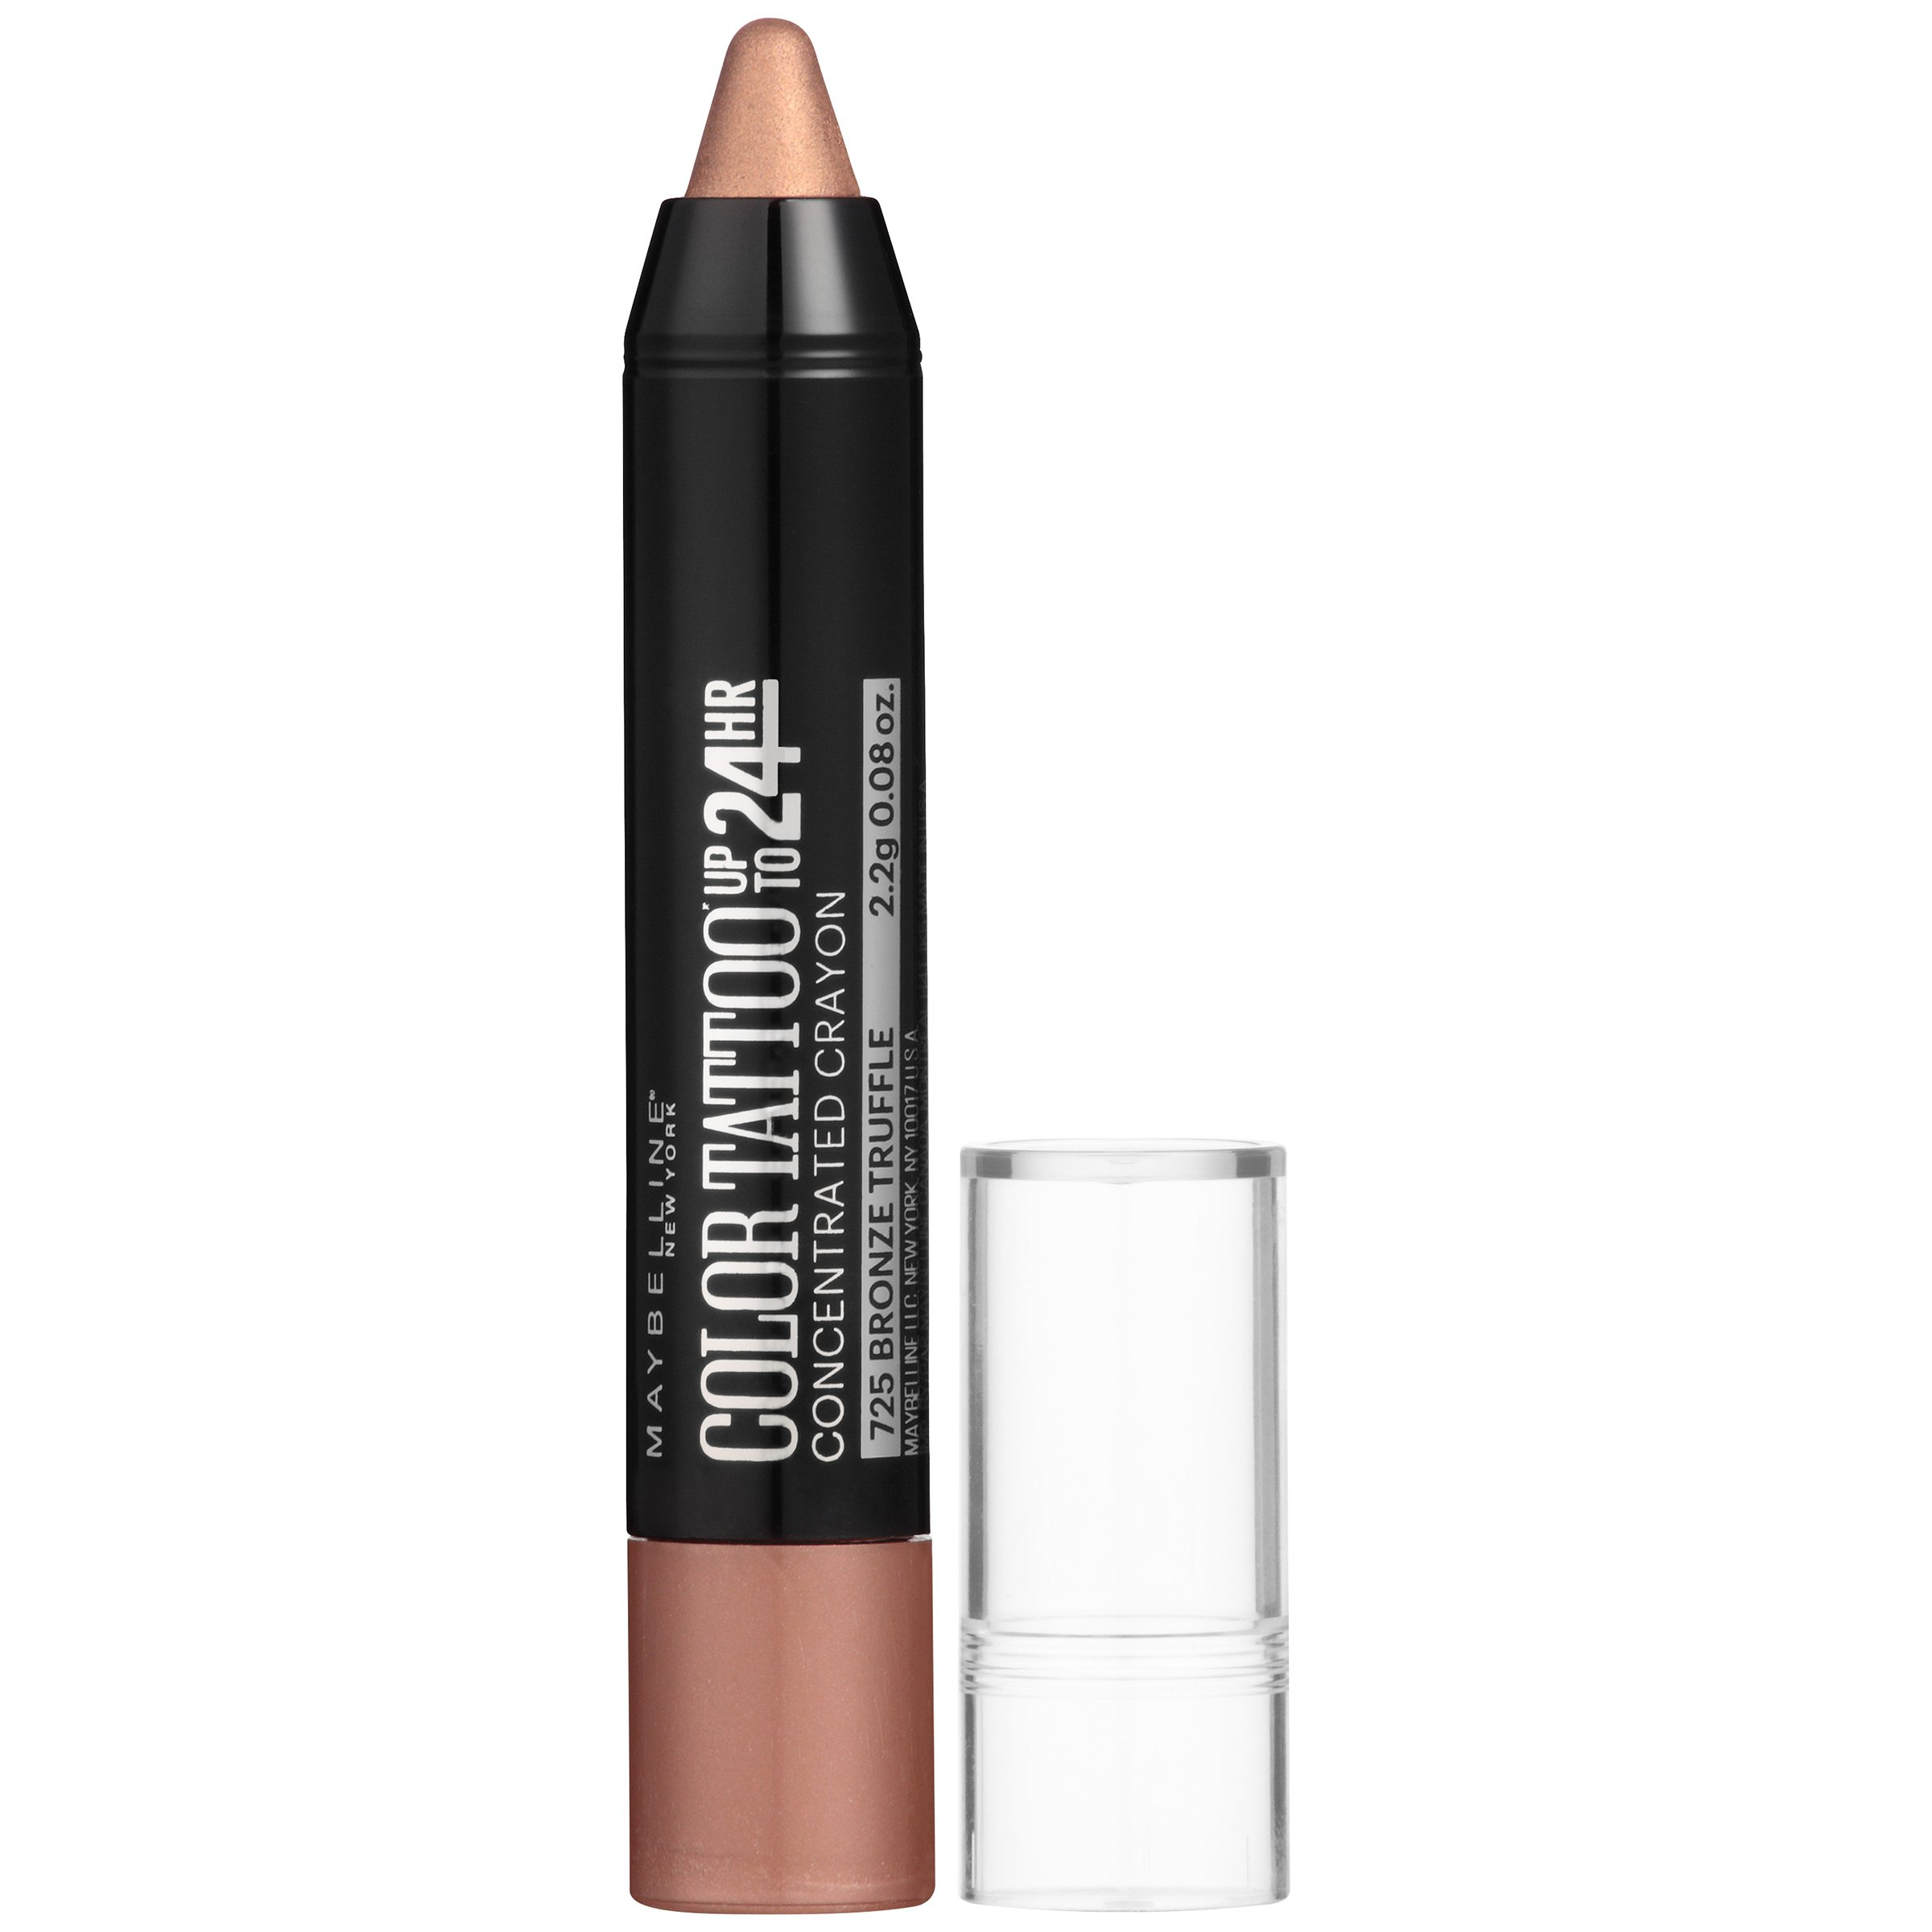 Maybelline Eyestudio ColorTattoo Concentrated Crayon,725 Bronze Truffle, 0.08 oz.